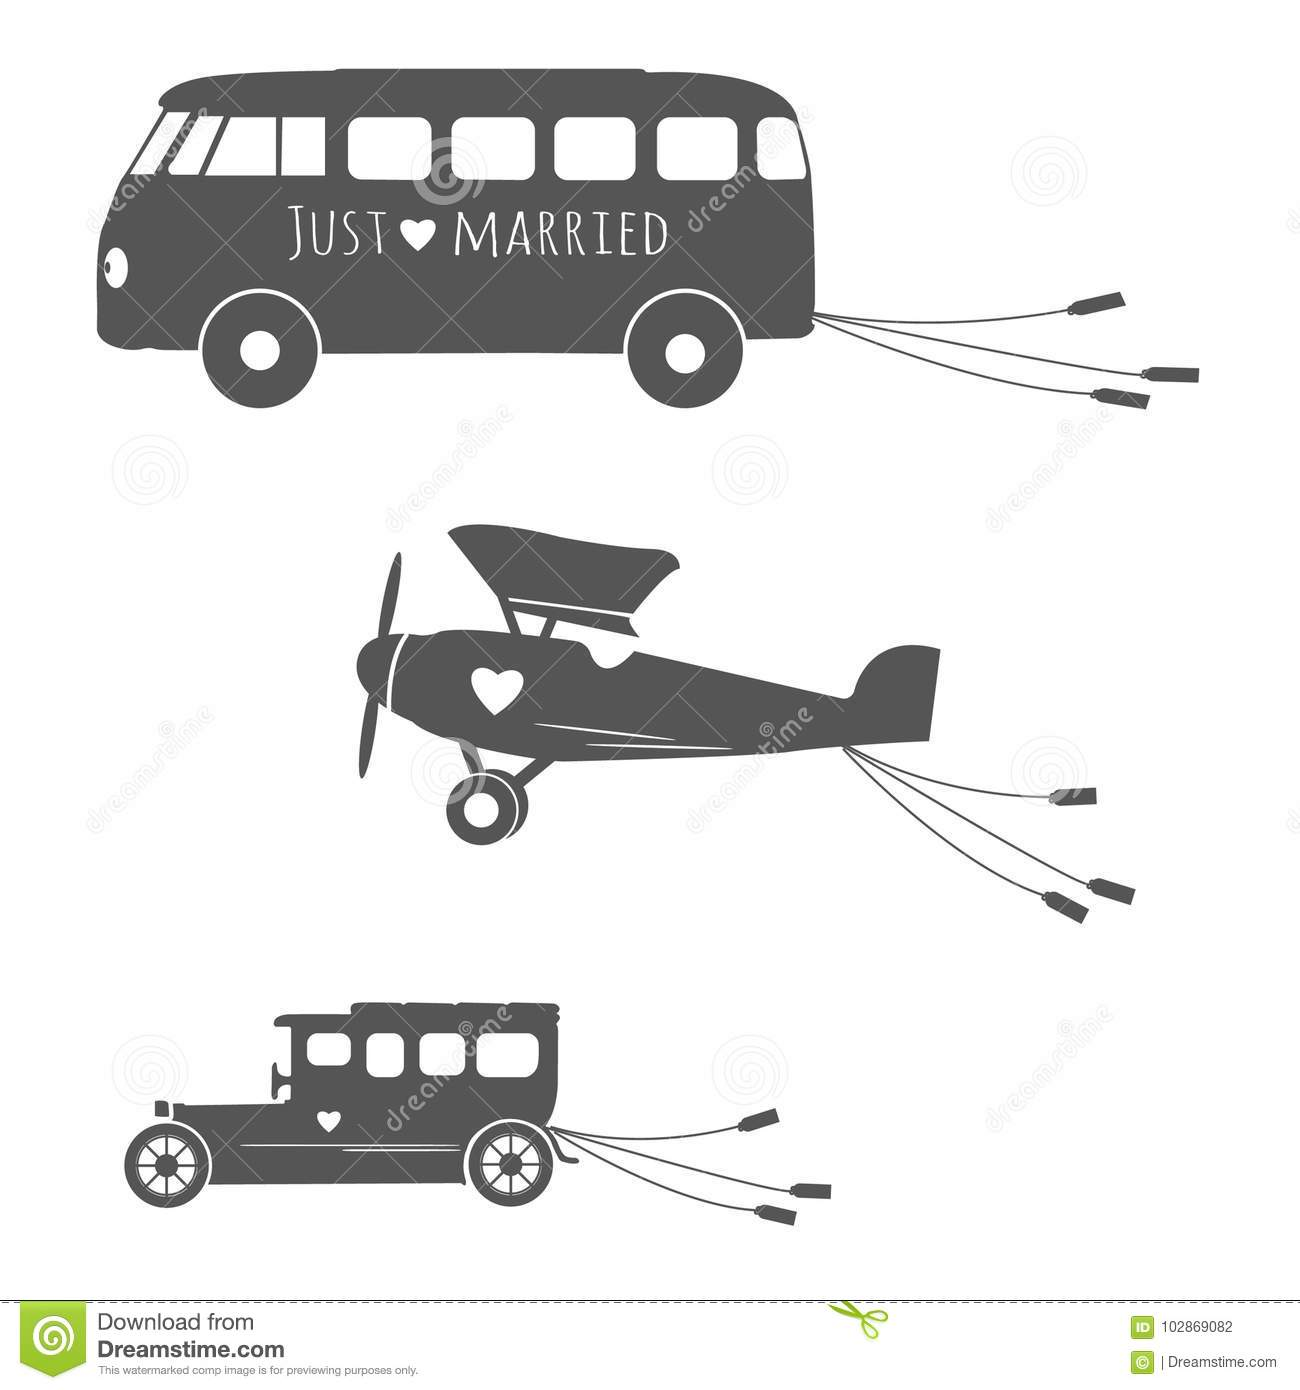 Vintage Wedding Transportation Set With Bus Car And Aircraft Stock